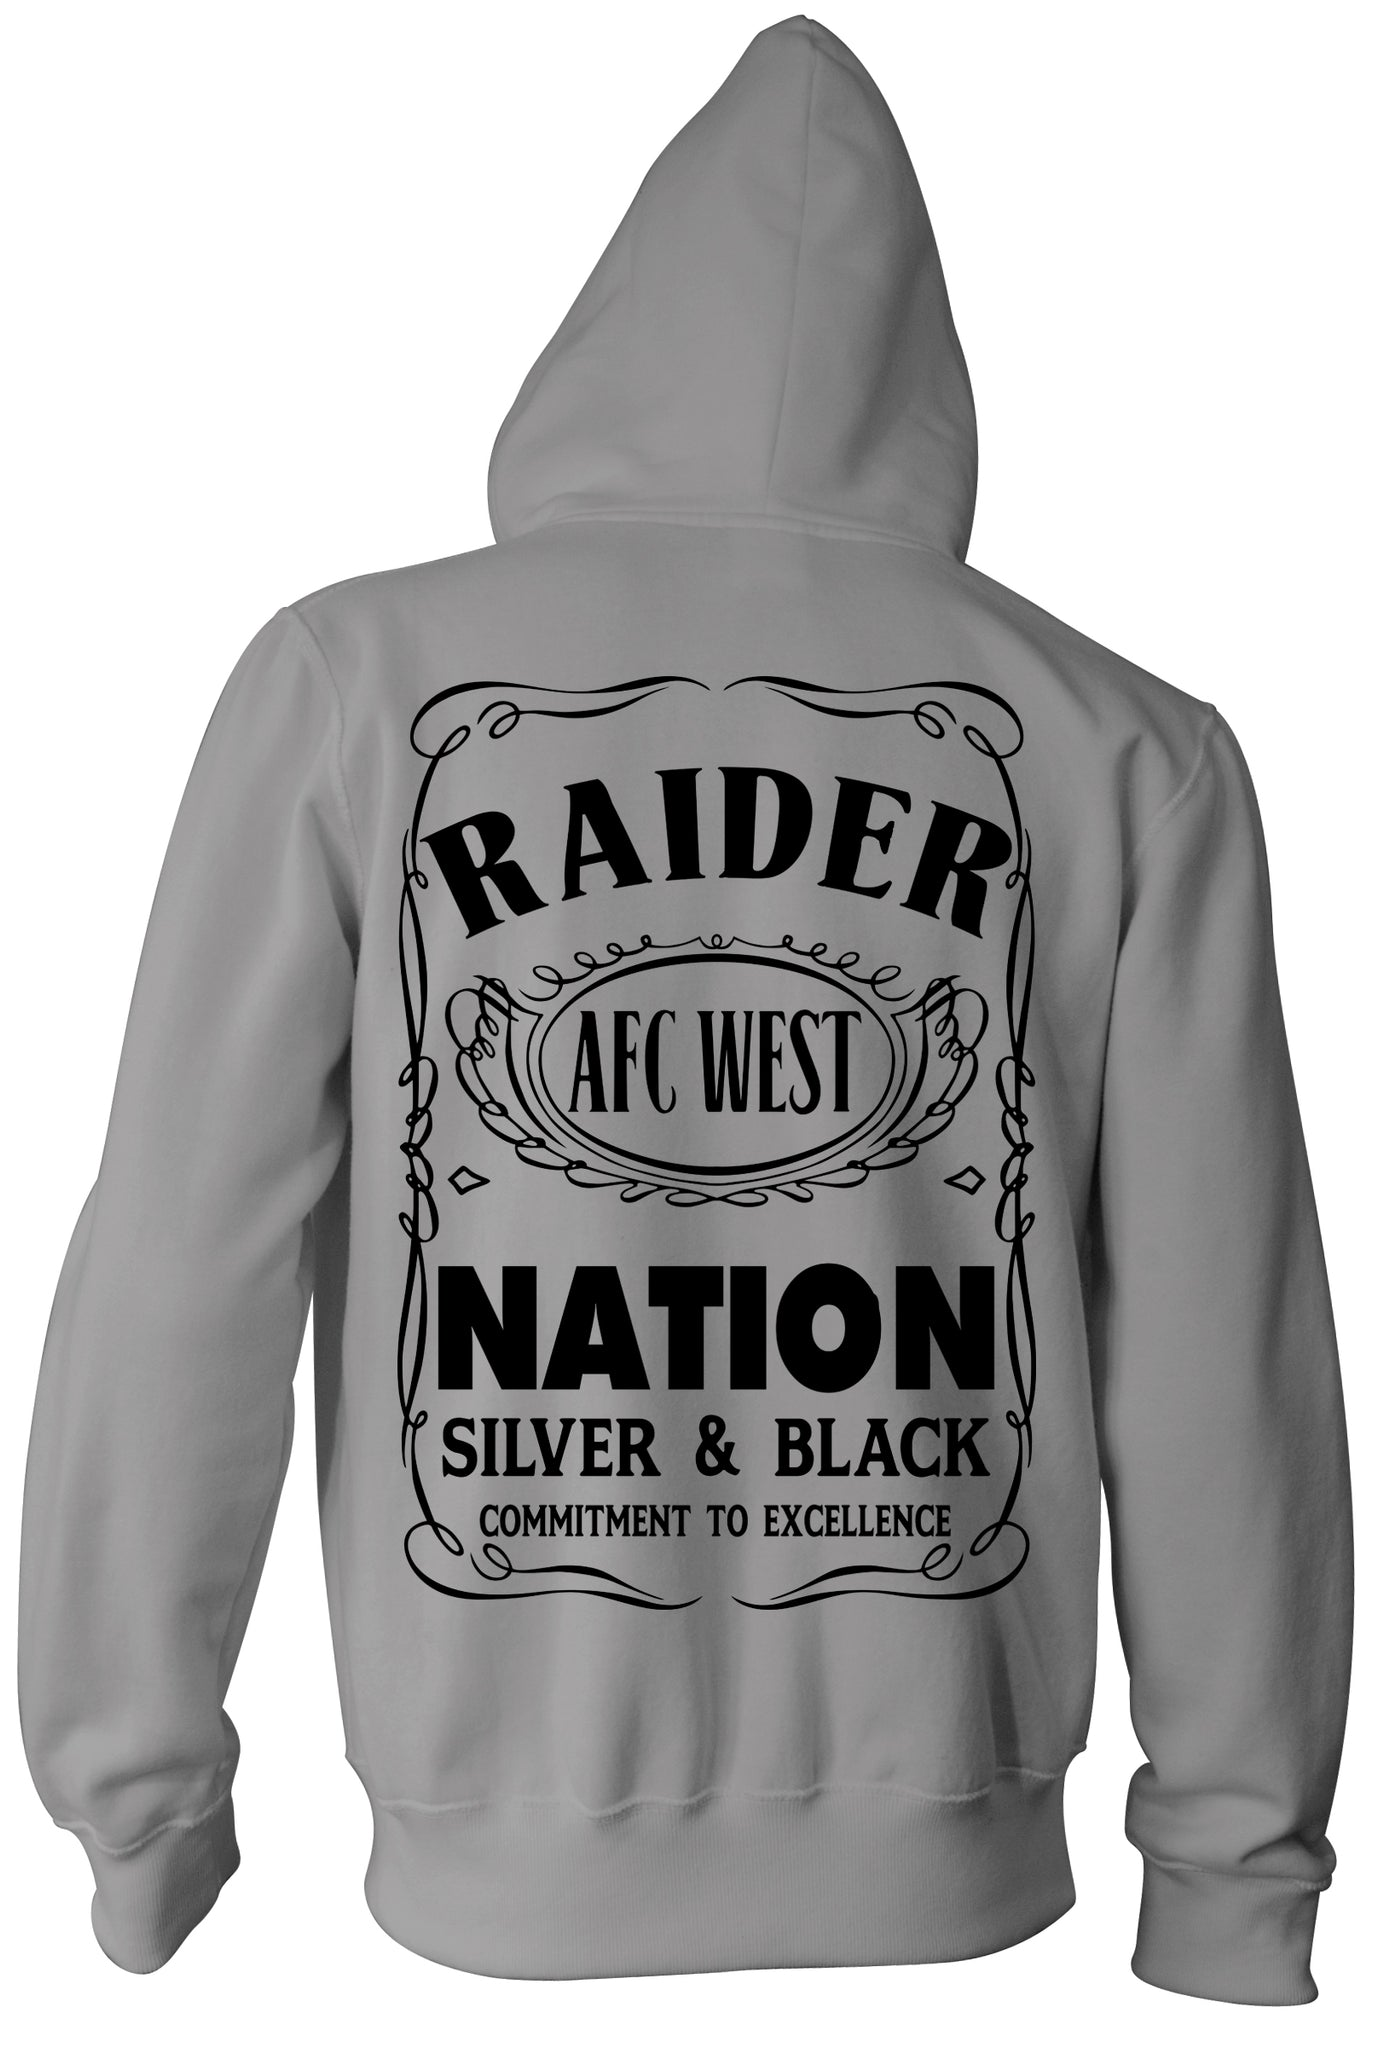 brand new f90f7 496d3 RAIDER NATION SILVER & BLACK ZIP UP HOODIE (NEW) OAKLAND RAIDERS EDITION